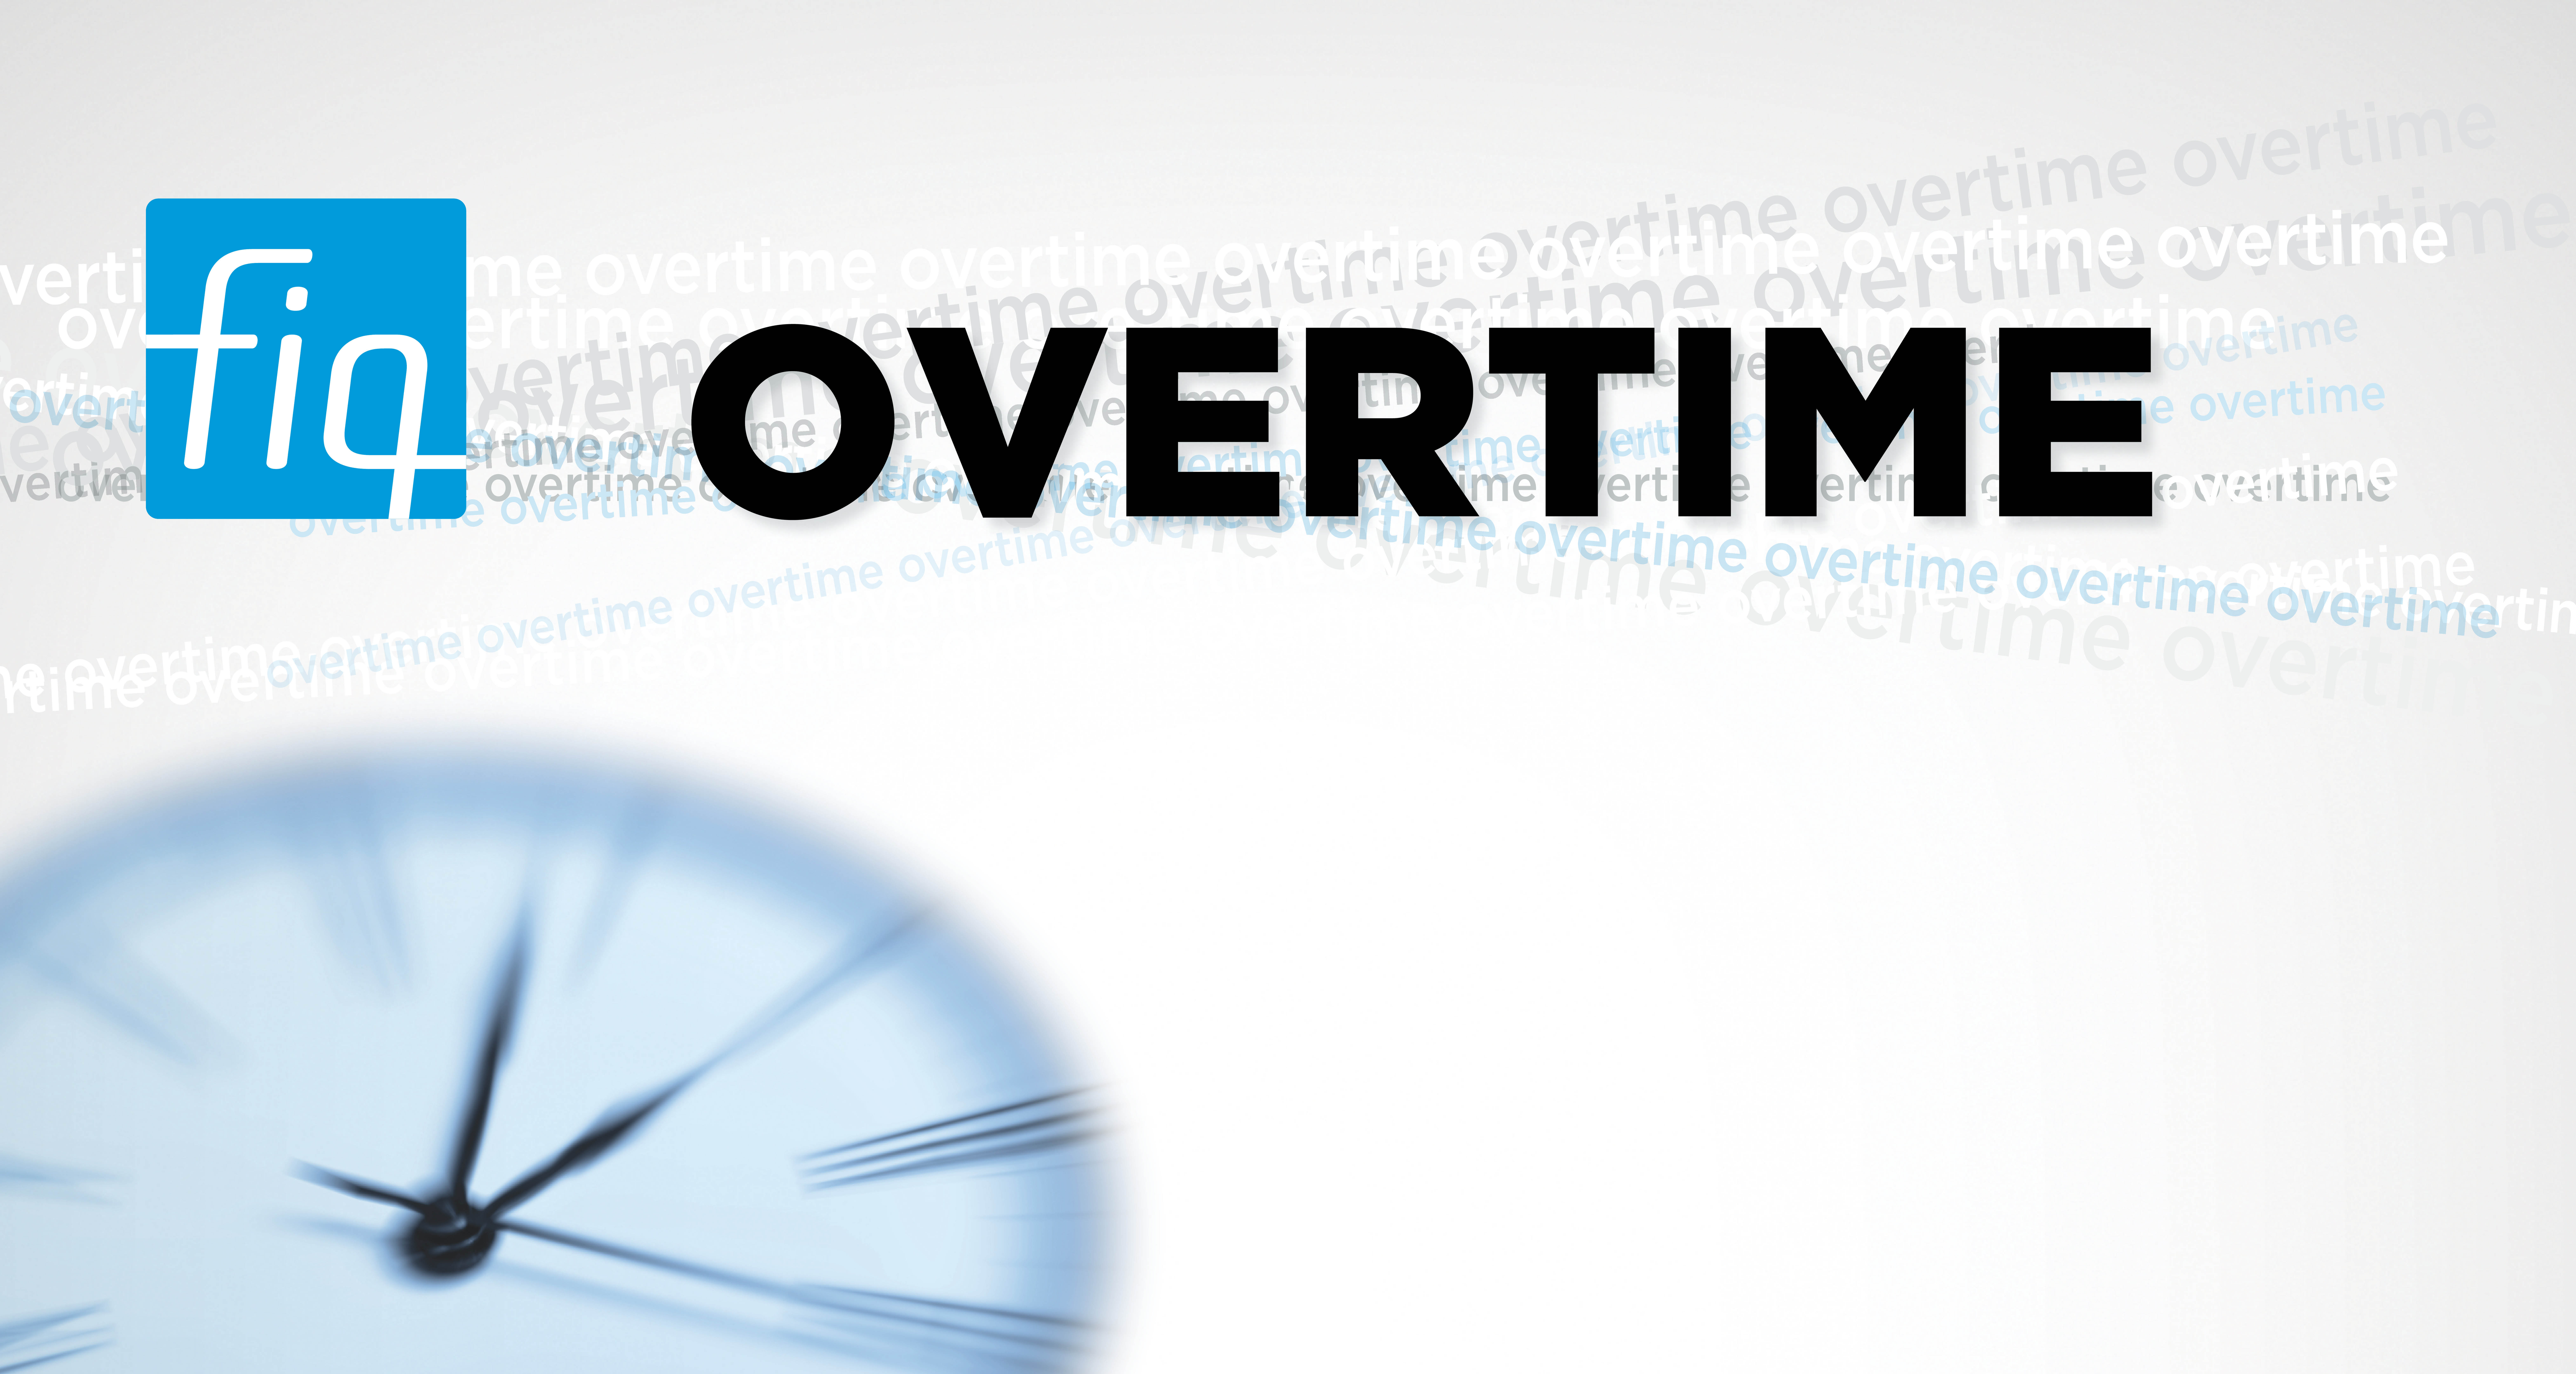 A new leaflet to help fight the use of overtime